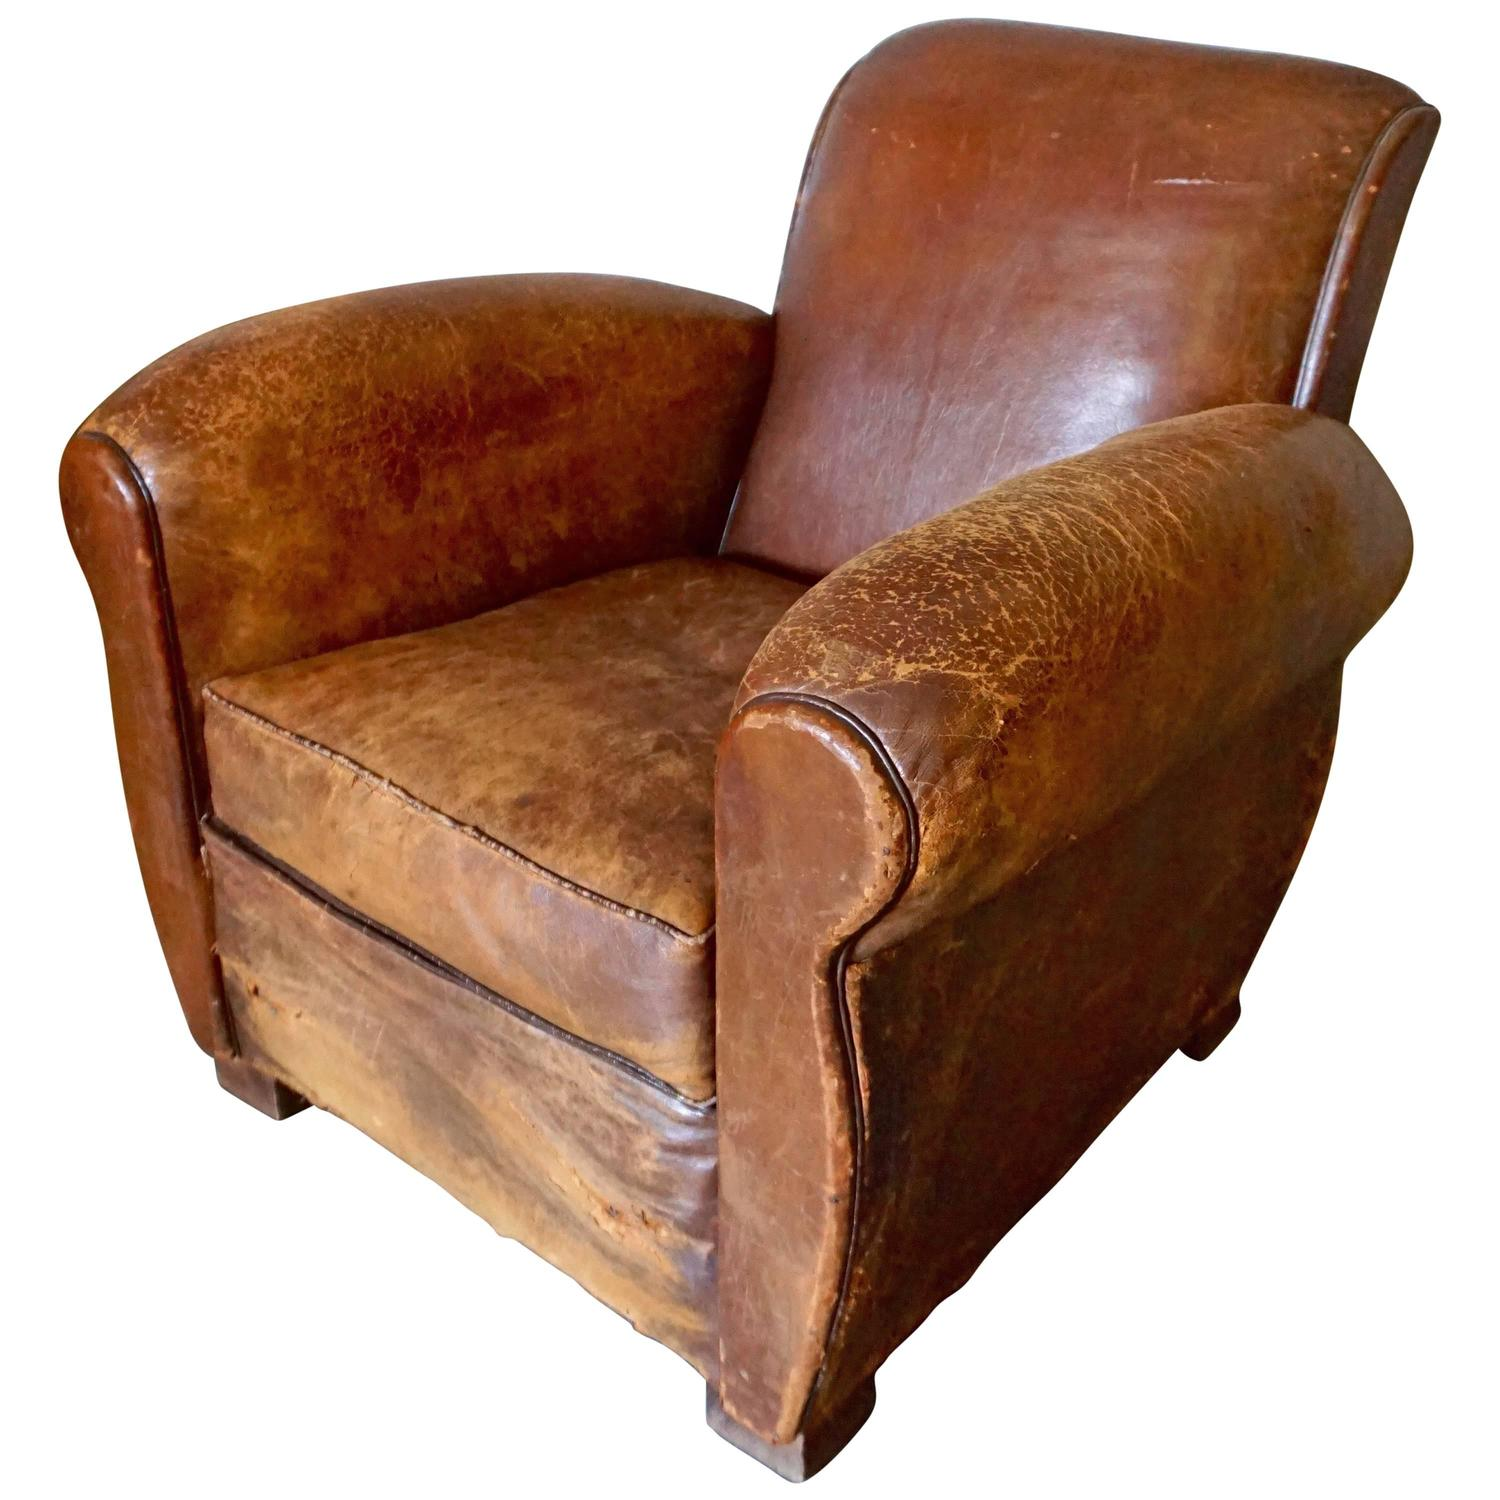 Distressed Leather Club Chairs : www.imgkid.com - The Image Kid Has It!